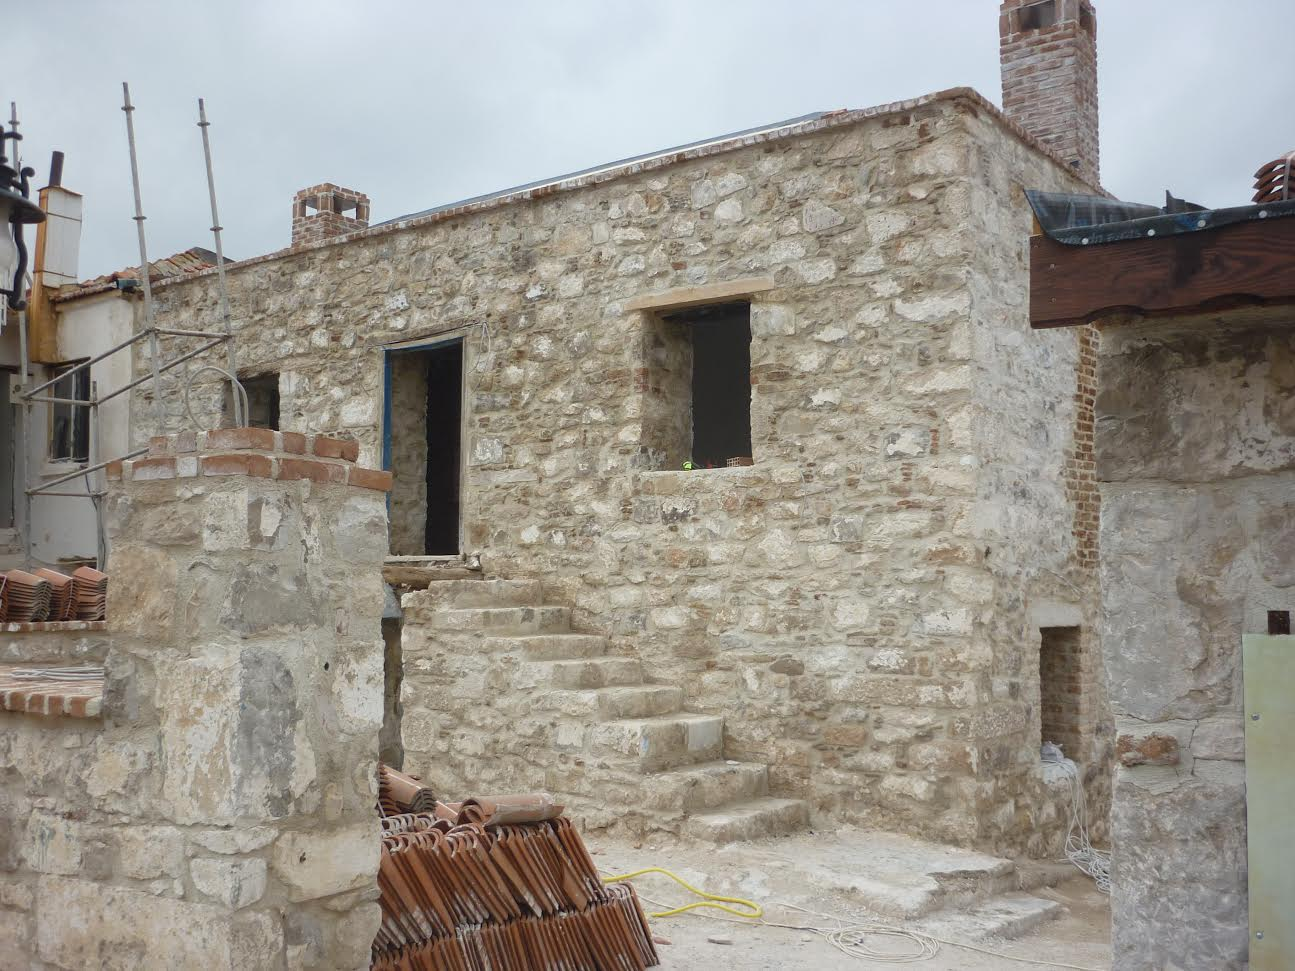 One of the Greek houses to be renovated